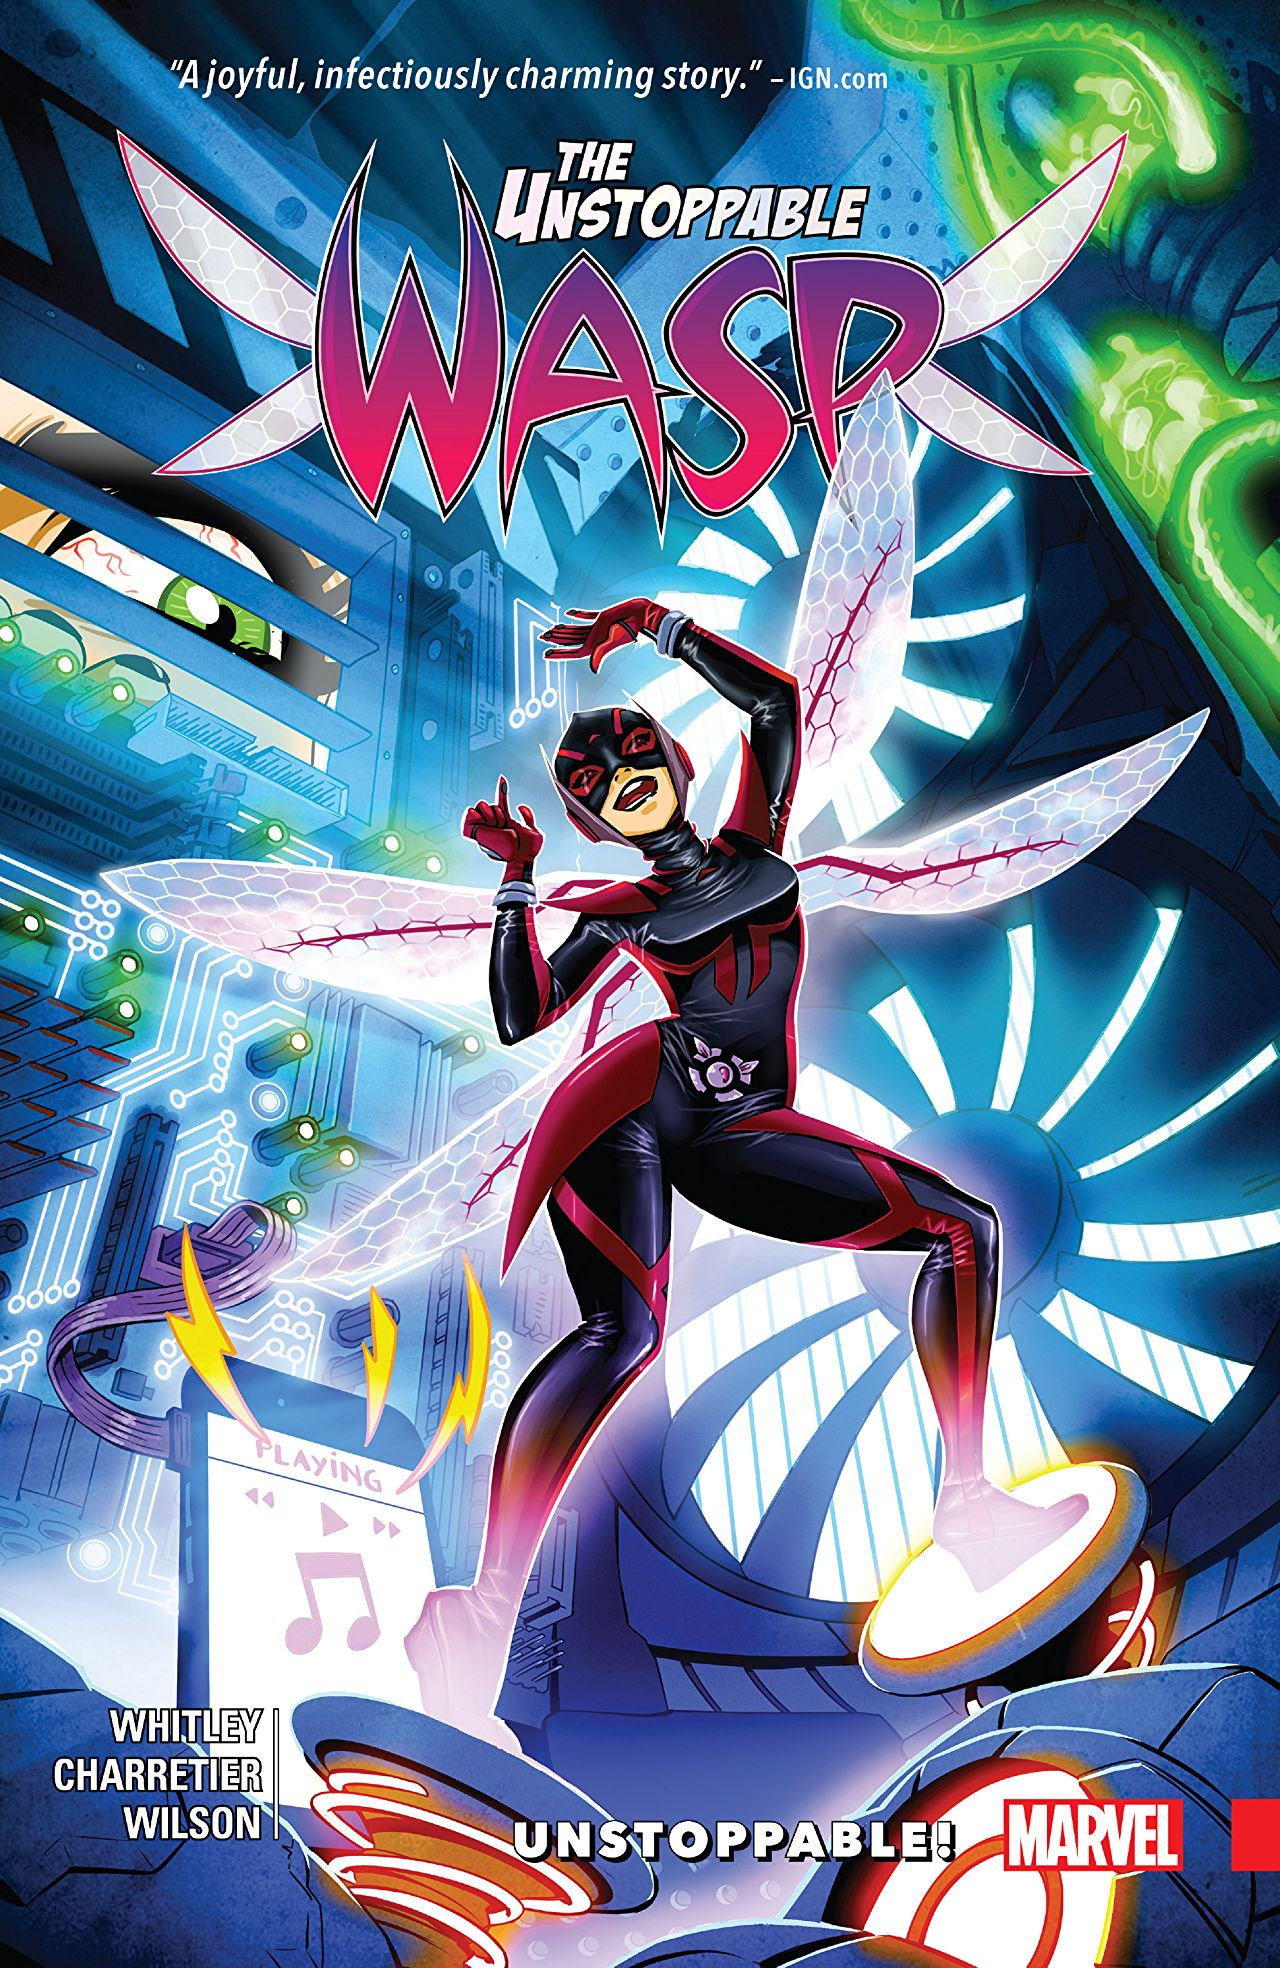 The Unstoppable Wasp Vol. 1: Unstoppable! Review